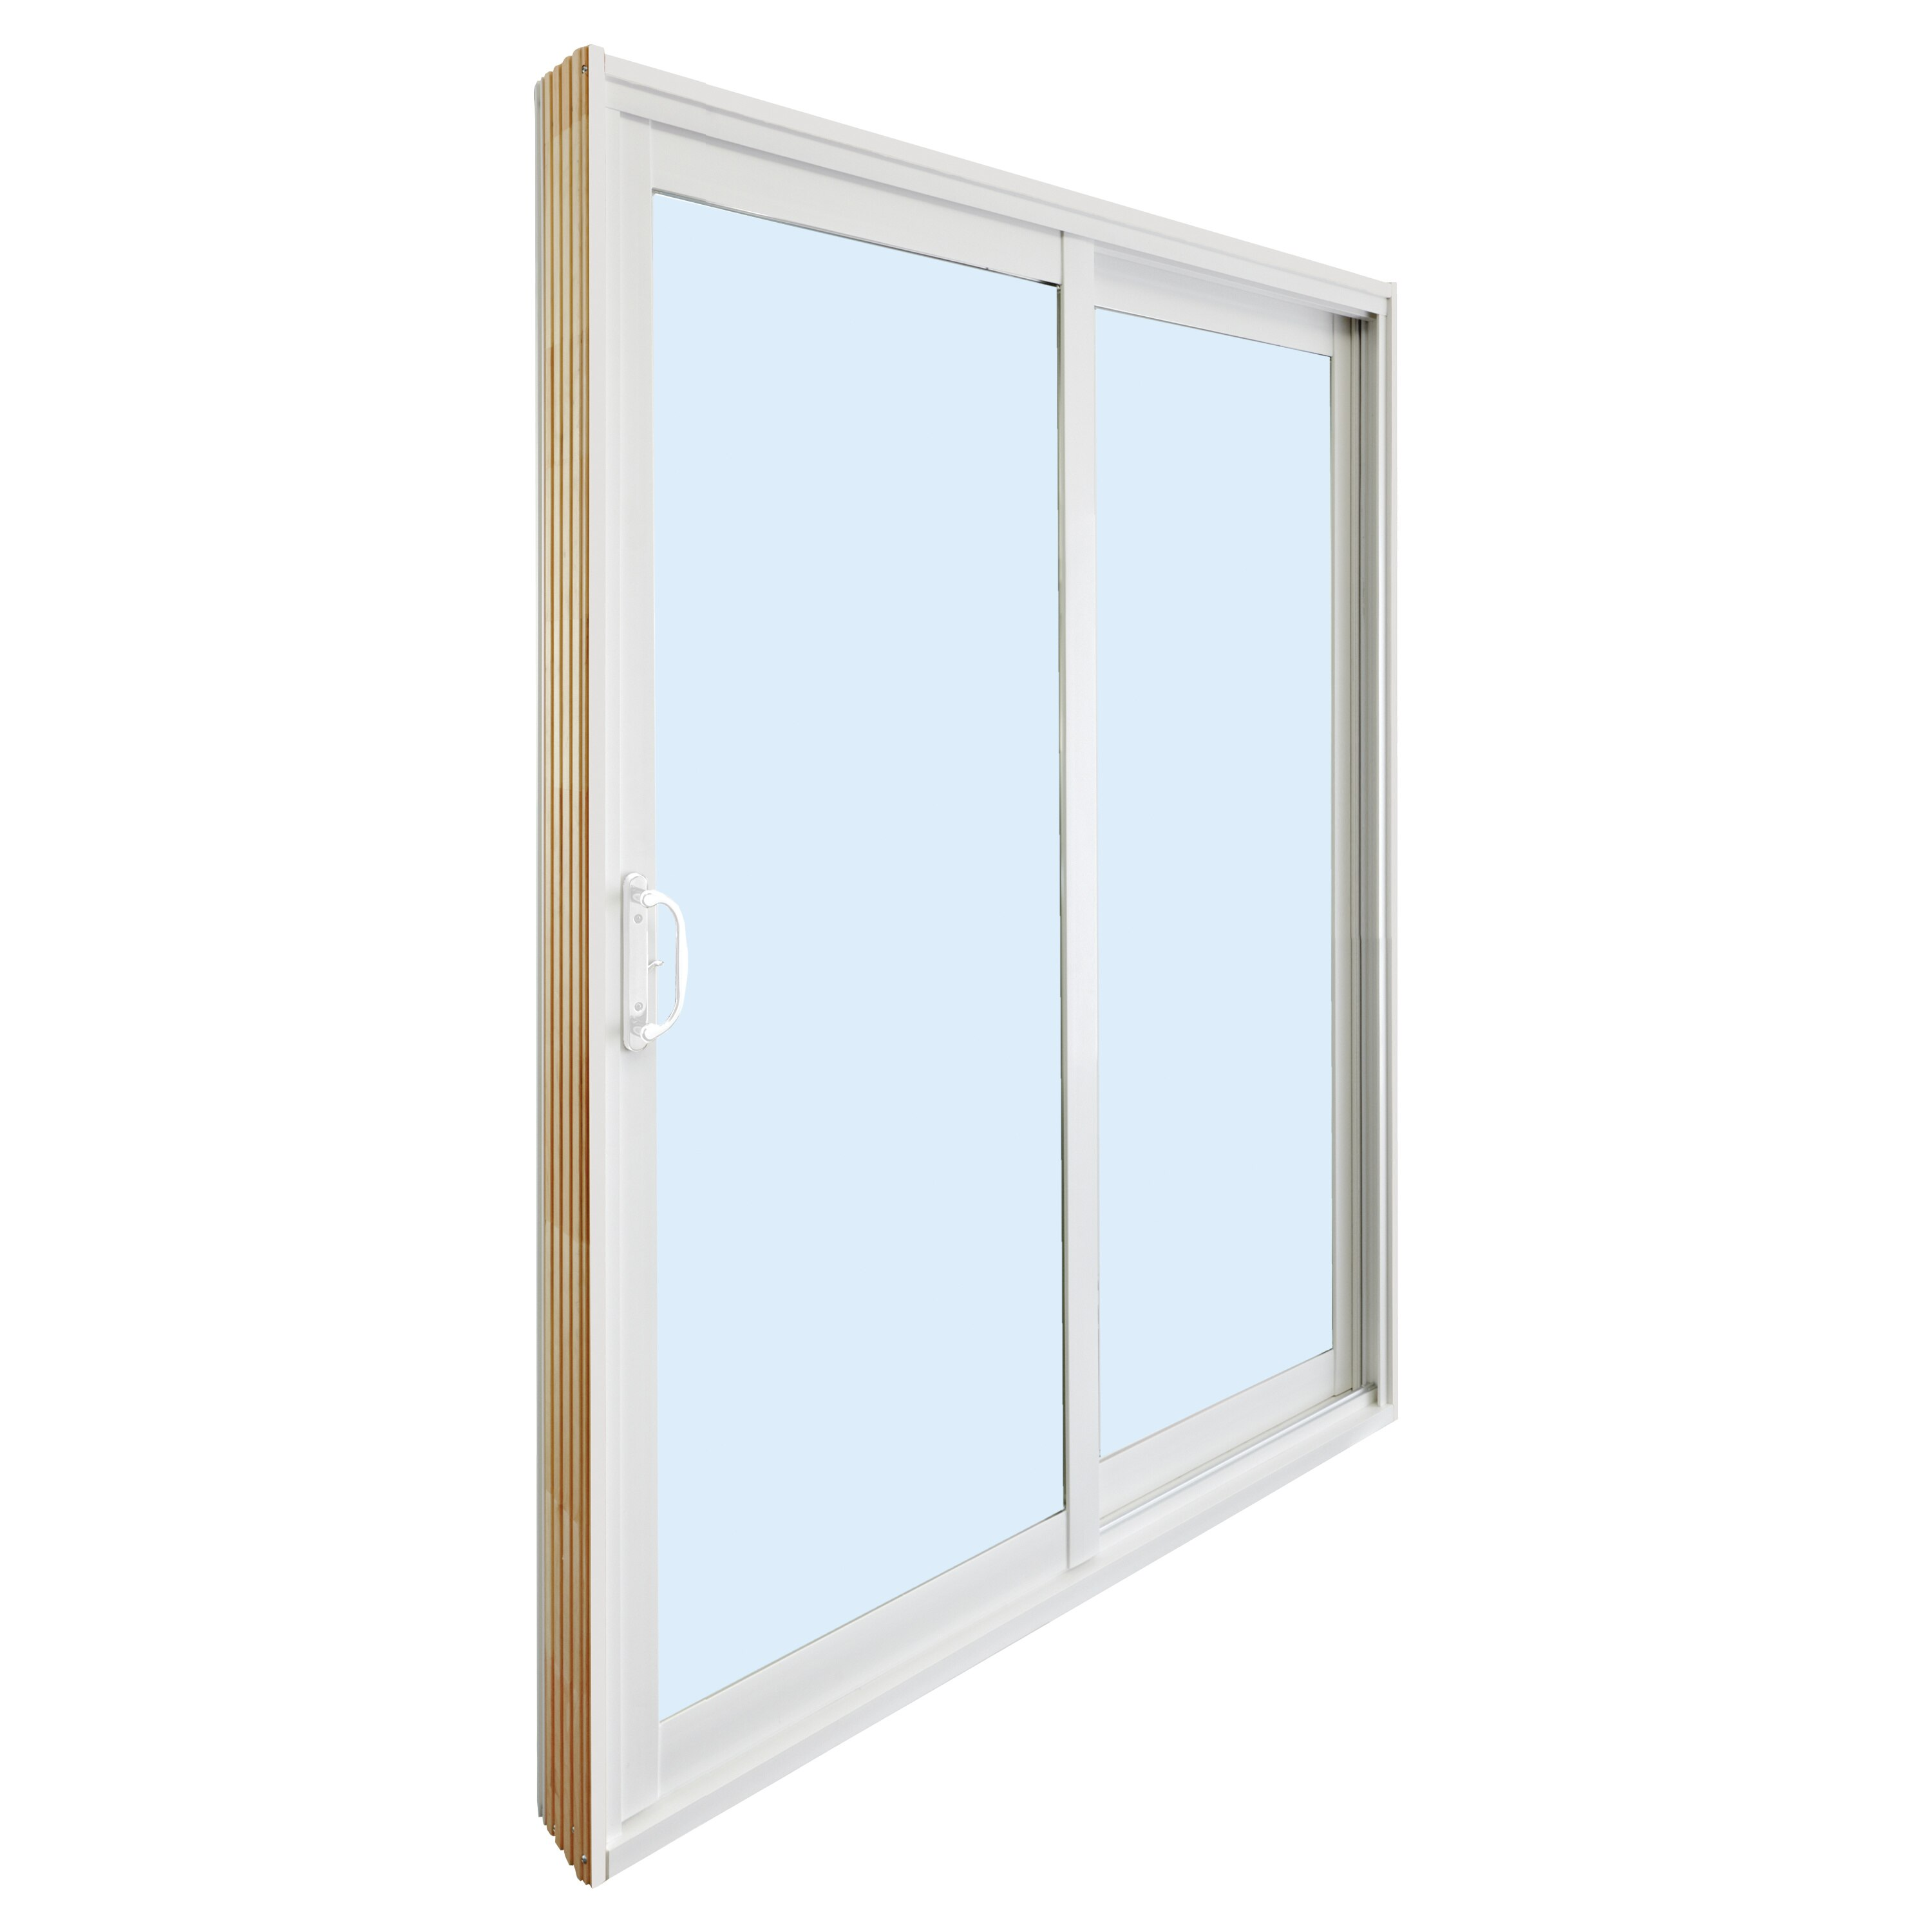 double sliding patio door with low e glass